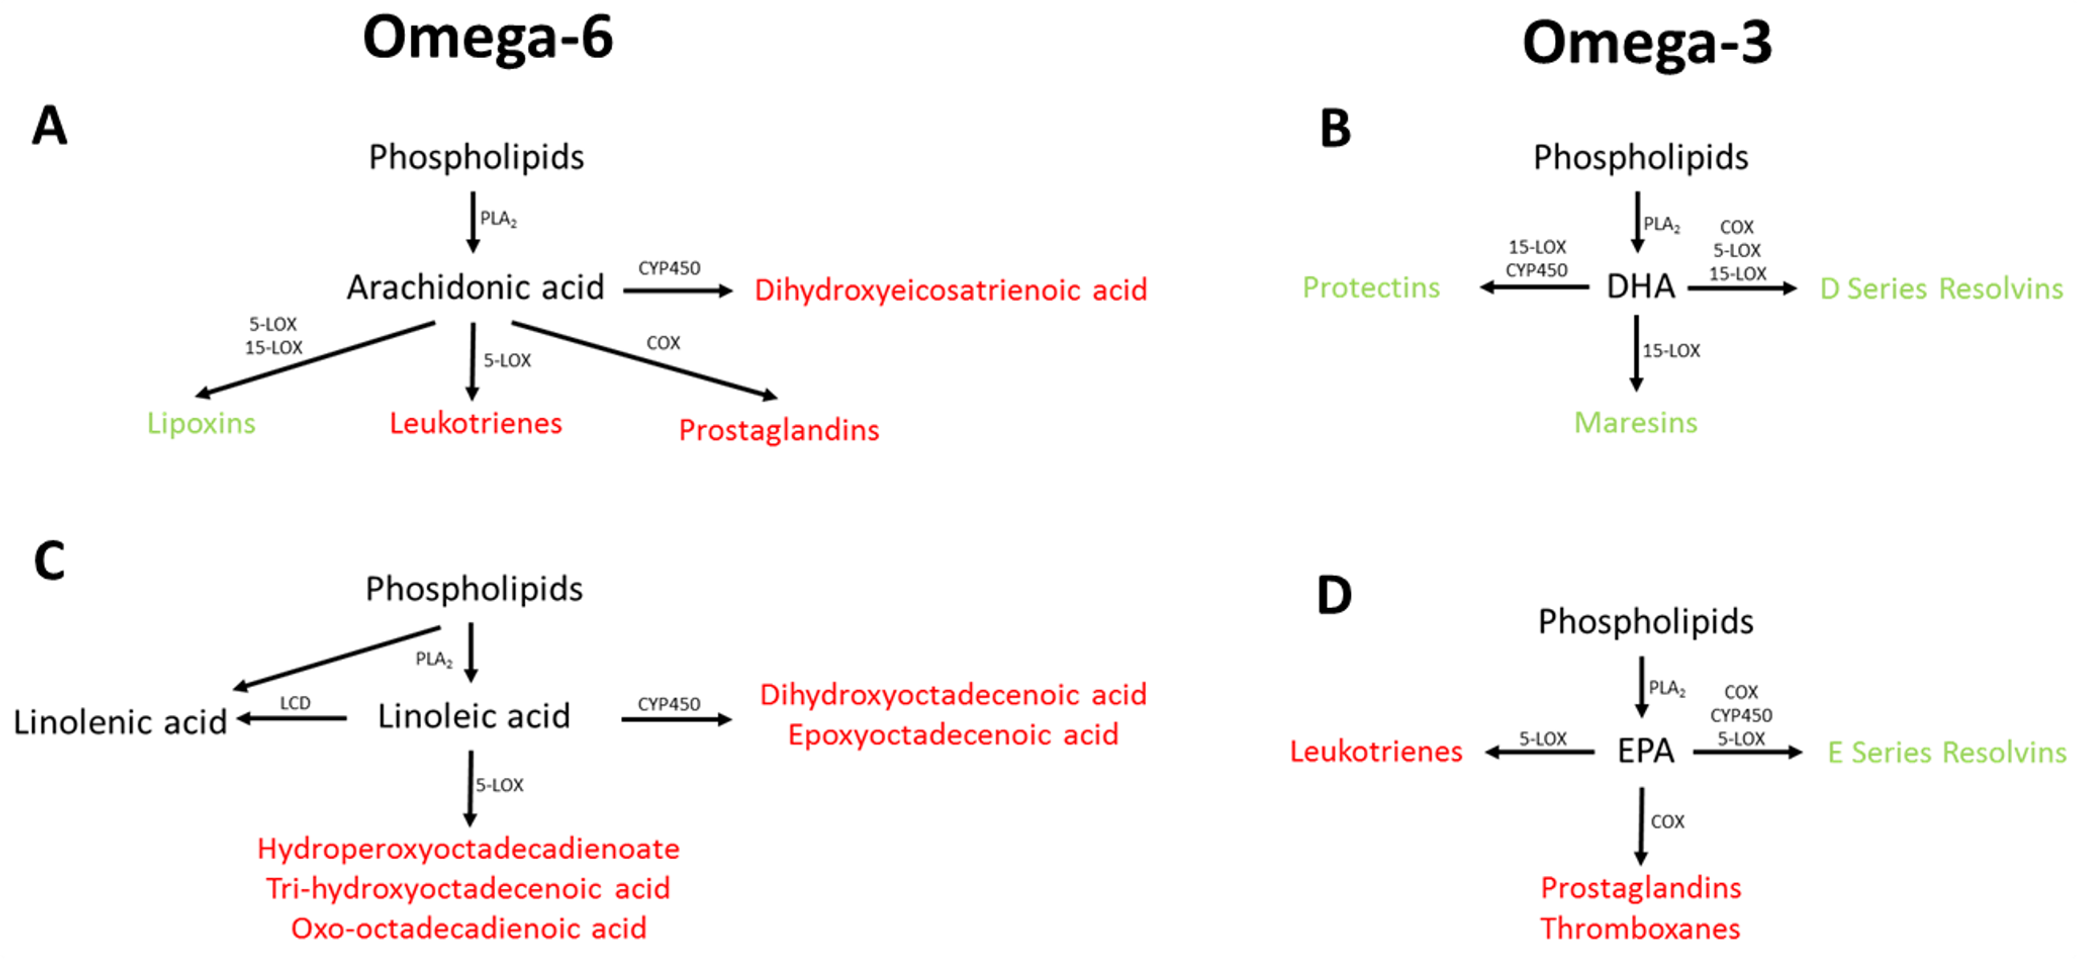 Overview of omega-3 and omega-6 UFA metabolism showing the potential association between the measured UFAs.